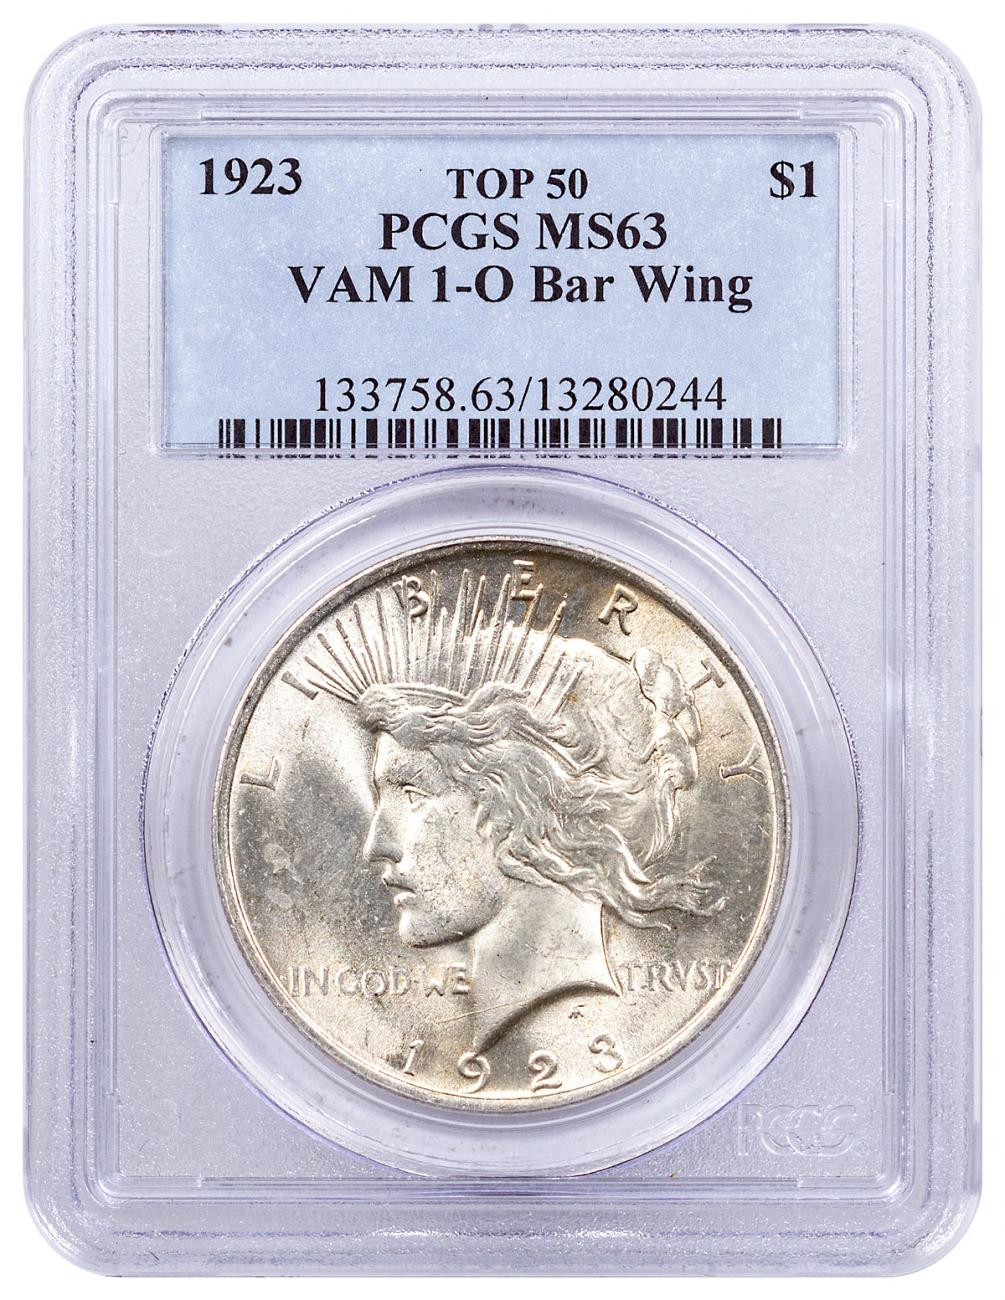 1923 Silver Peace Dollar Top 50 PCGS MS63 VAM-1 O Bar Wing